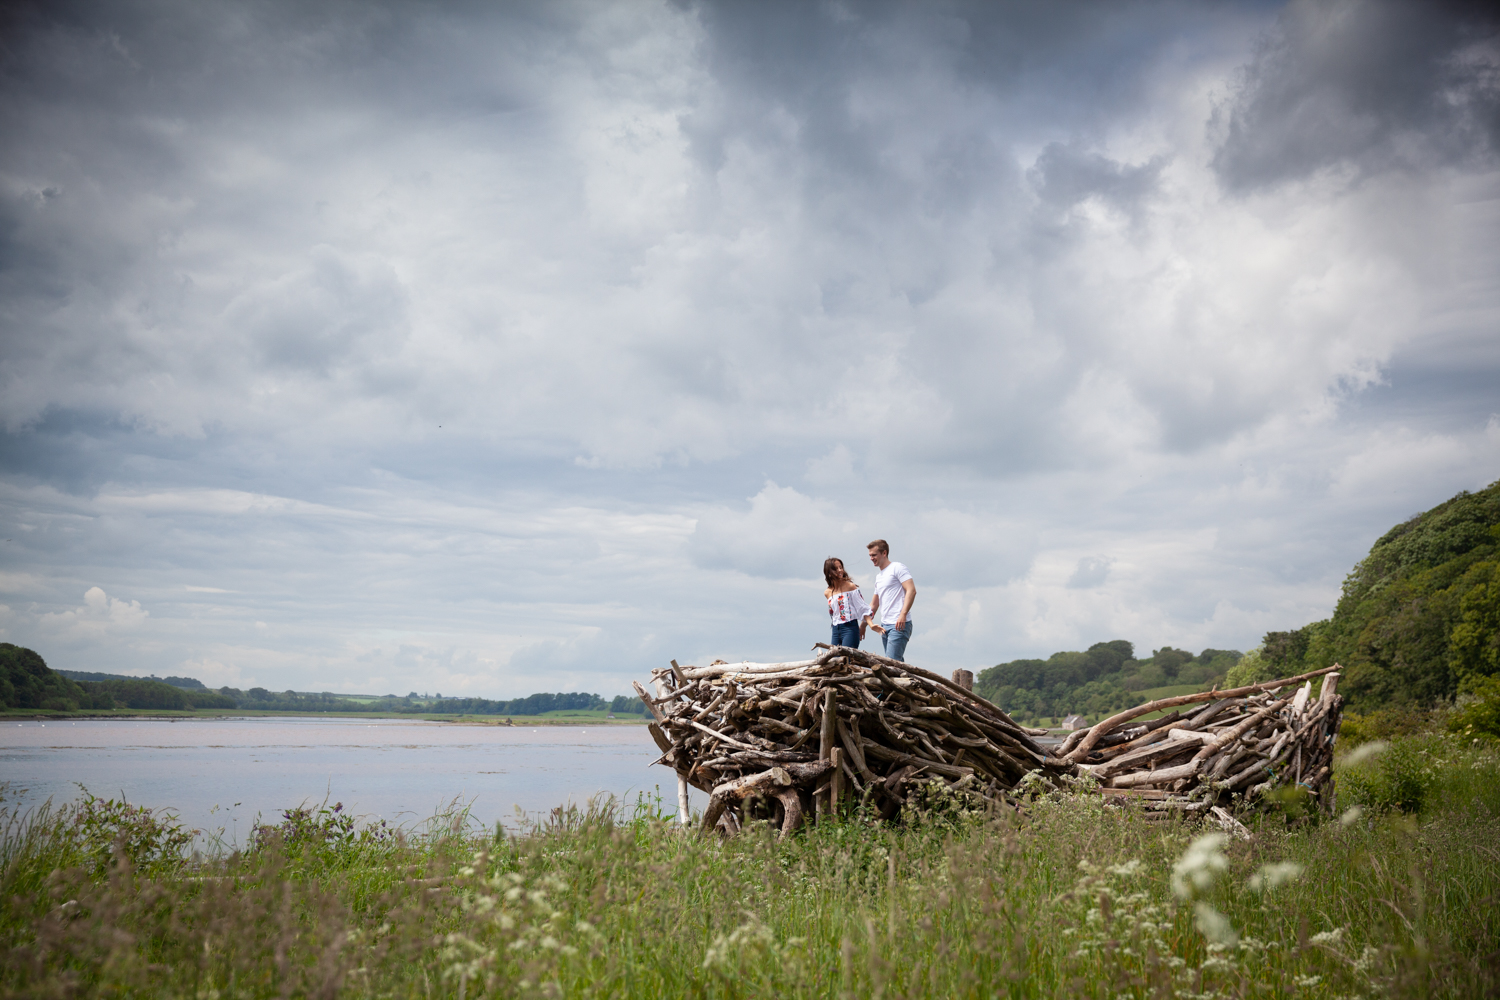 MICHAEL_ANNALISE_PRE-WEDDING_PHOTOSHOOT_BERWICK_PICTORIAL_PHOTOGRAPHY_COUPLE_RIVER_BOAT_RIVERSIDE_BRIDGES--1053.jpg